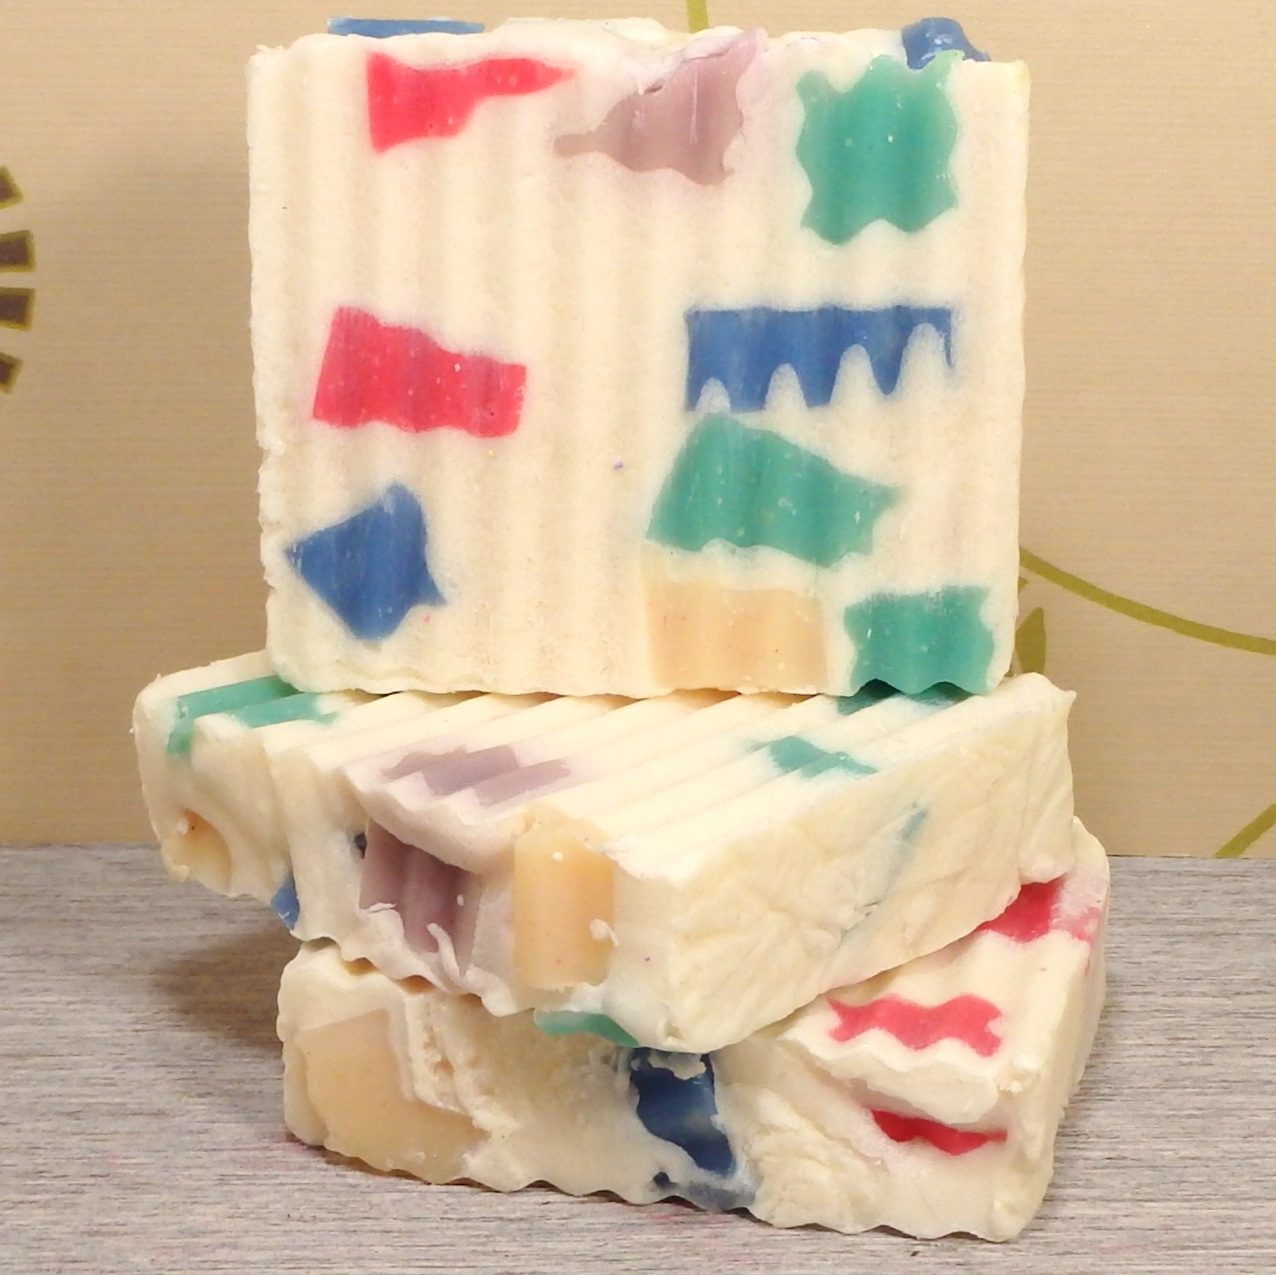 Selling Your Own Soap in Australia - The Greening of Gavin